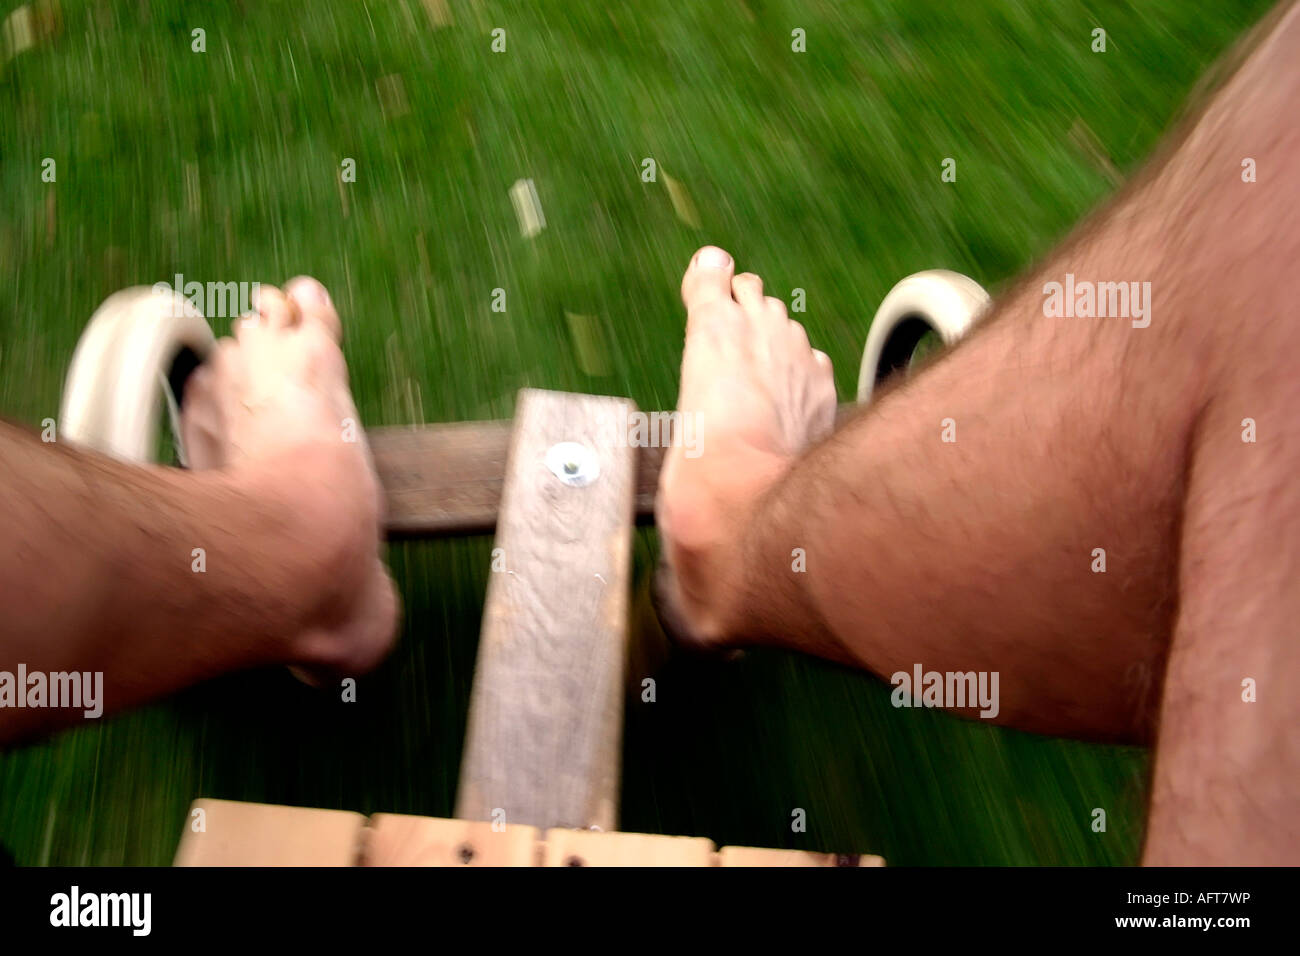 Man S Feet Steering A Home Made Go Kart At Speed Over Grass Stock Photo Alamy